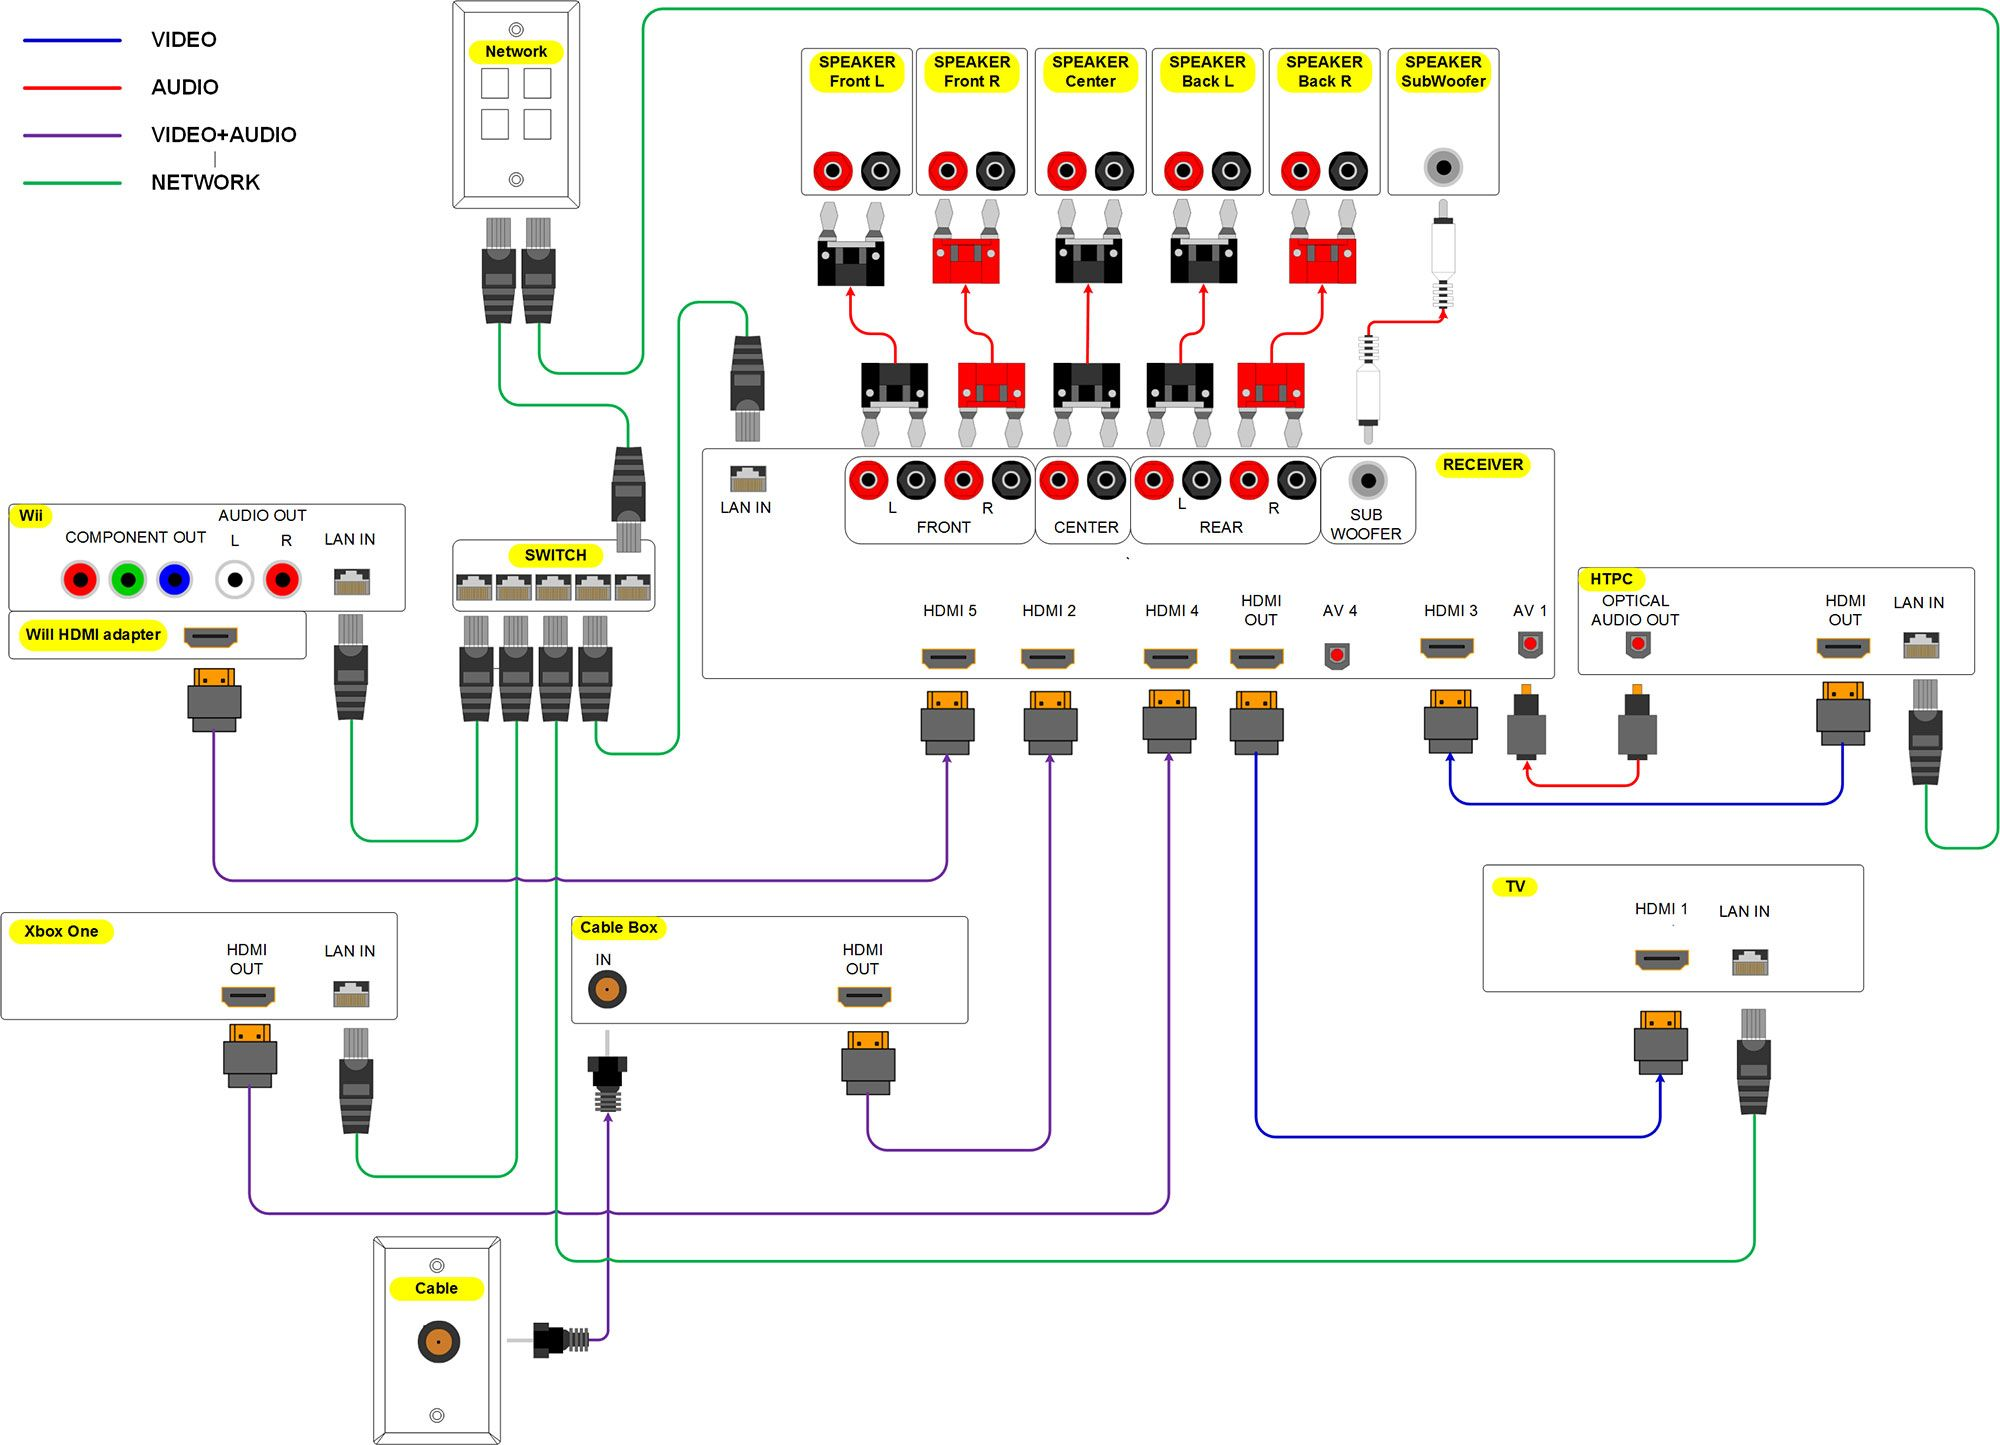 ae3ef715ed5d6ac384ec9c2b84075aef home theater wiring diagram (click it to see the big 2000 pixel bath sink immersion wiring diagram at soozxer.org